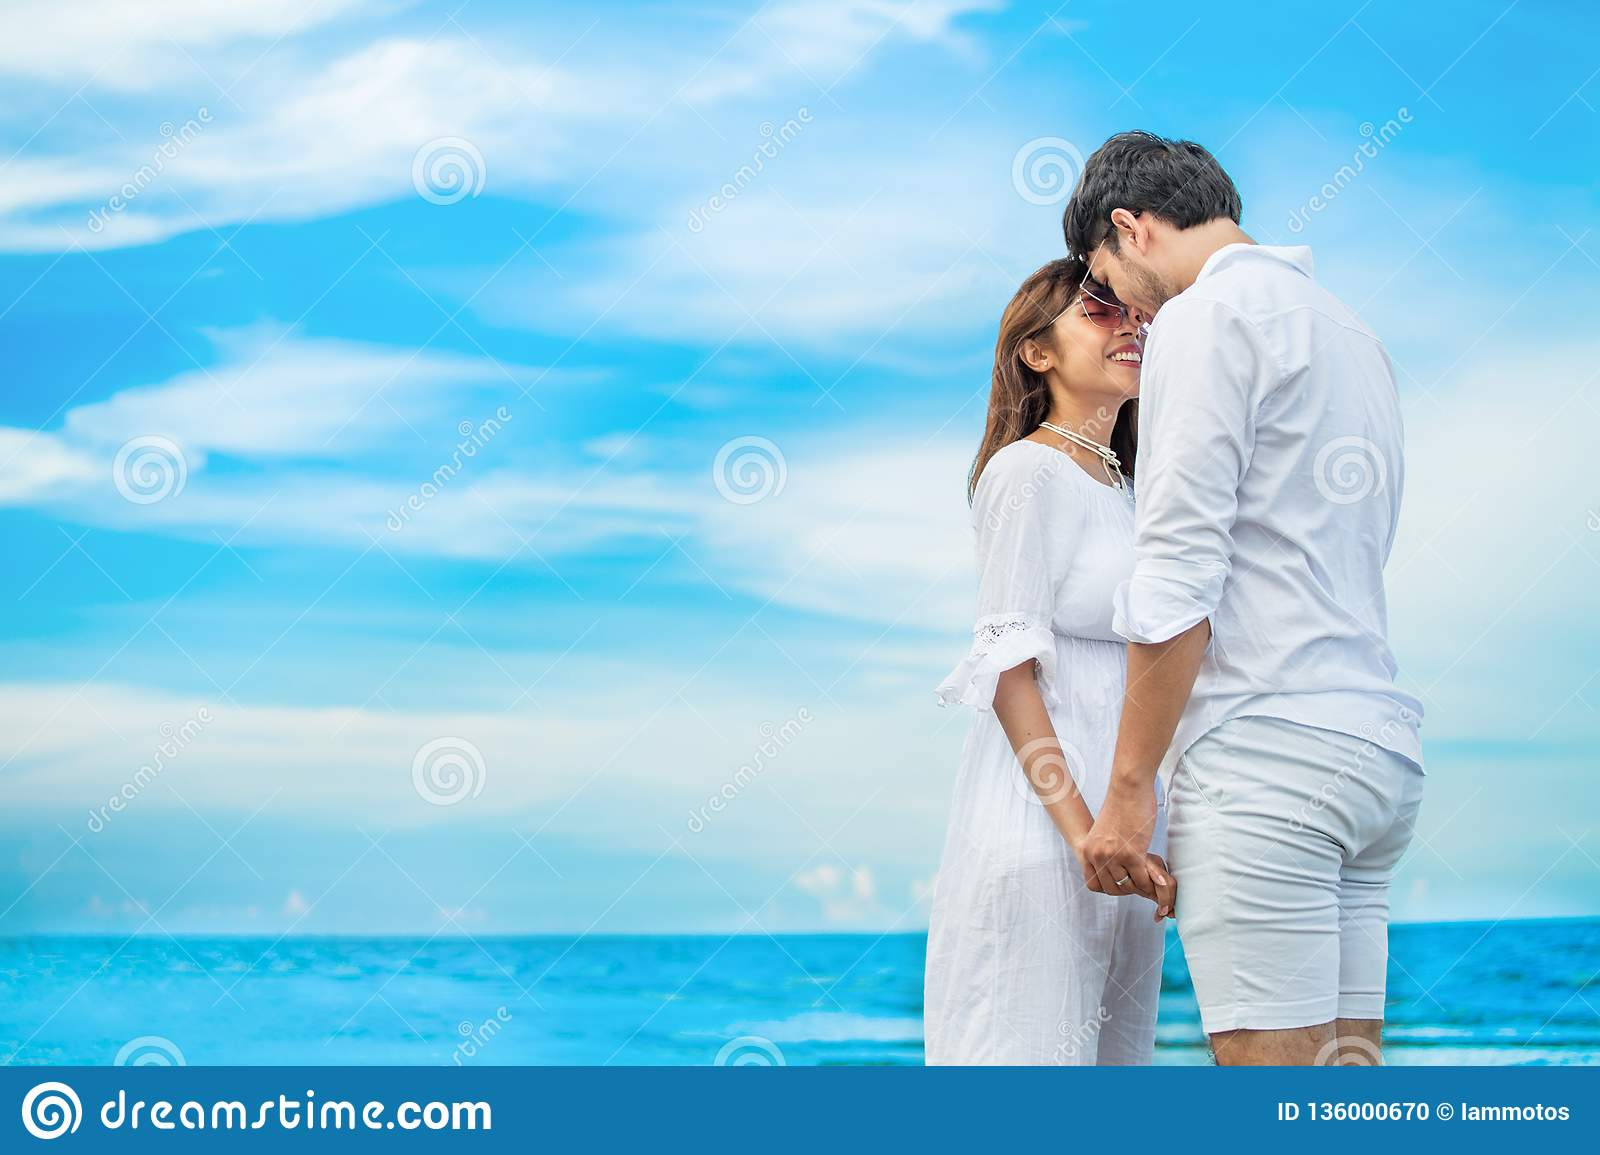 Young couple in love looking to each other and holding hand together at sea beach on blue sky .happy smiling young wedding with